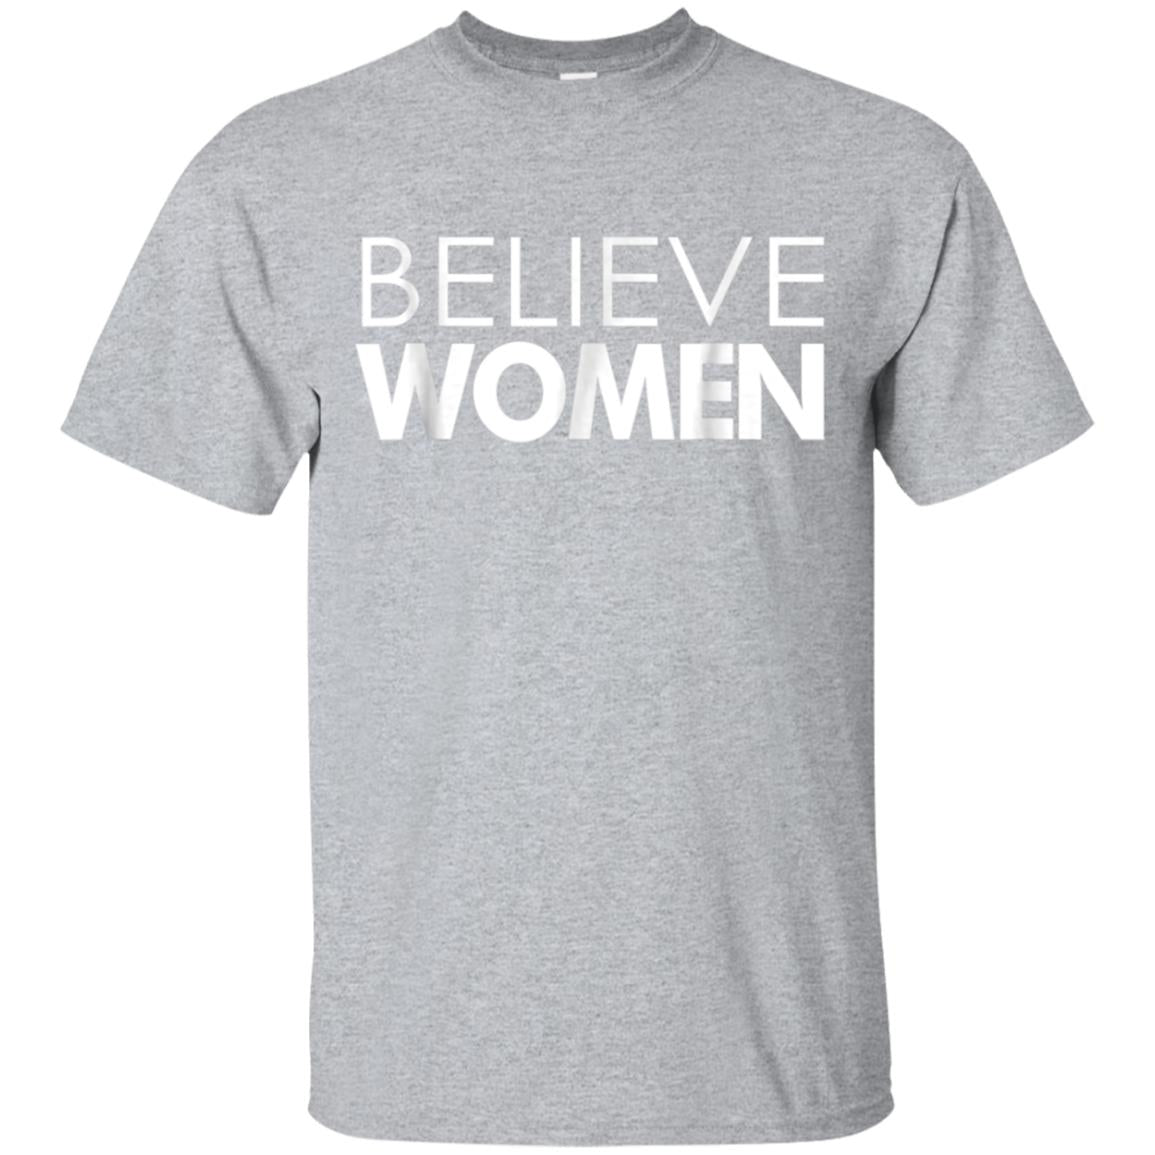 Believe Women T Shirt for Women Vintage Shirt 99promocode